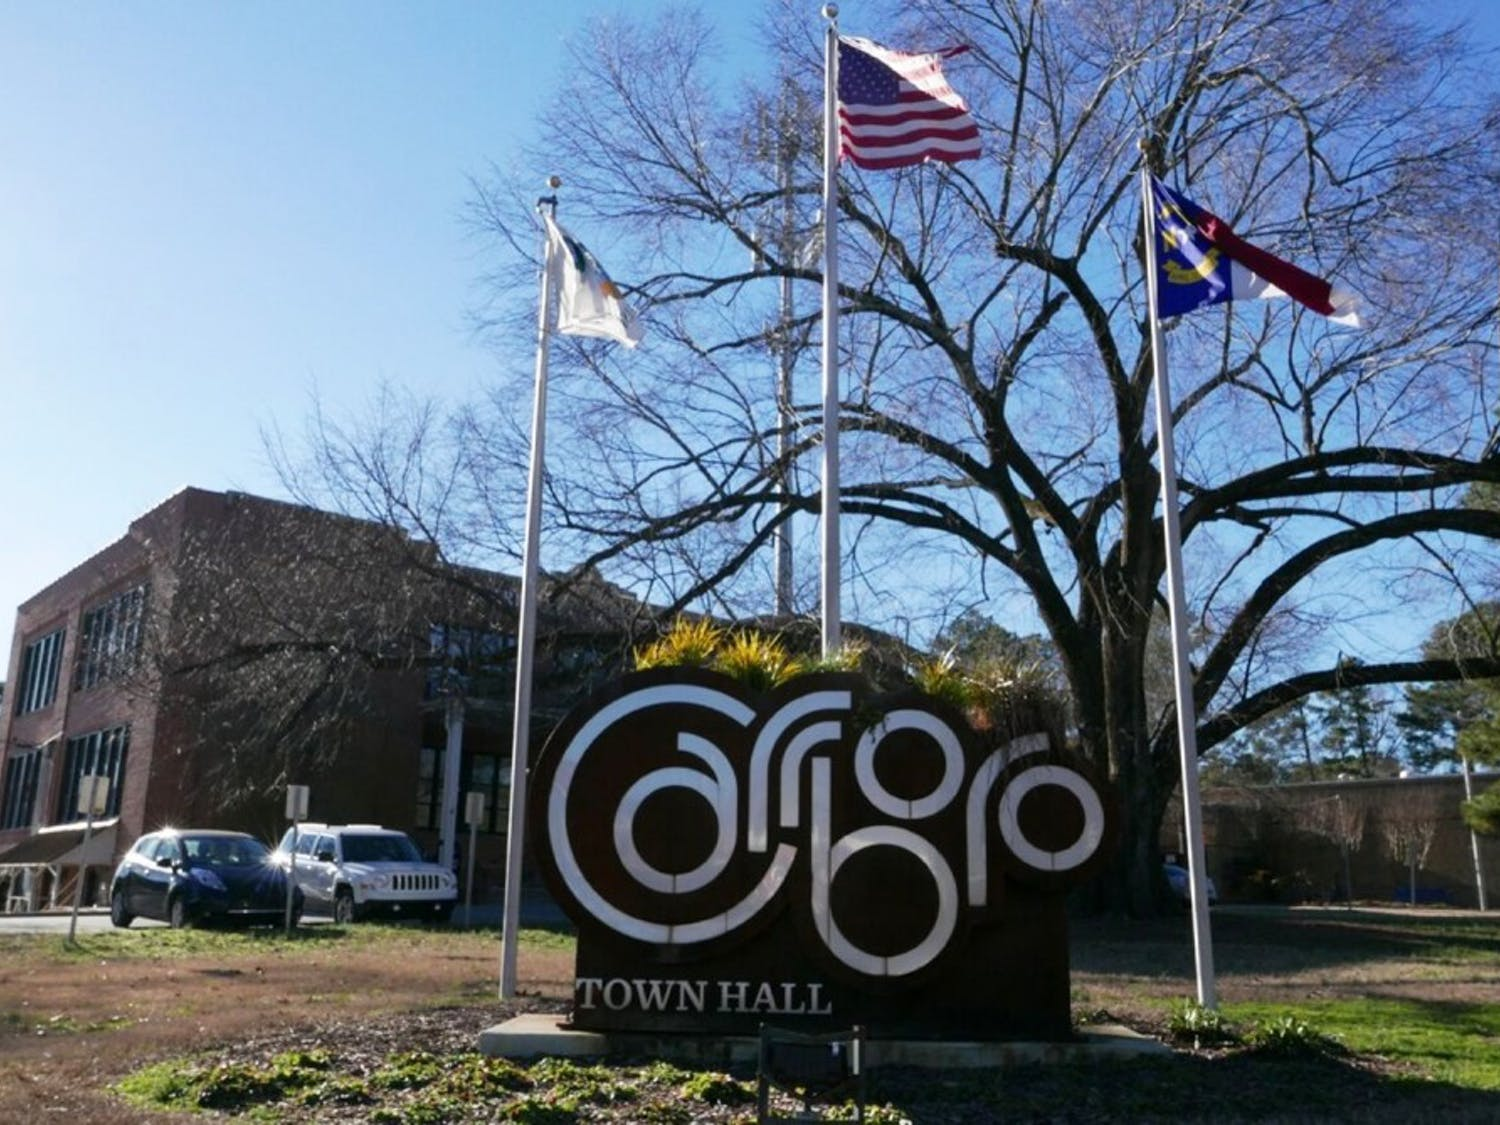 Carrboro Town Hall is located at 301 West Main St.